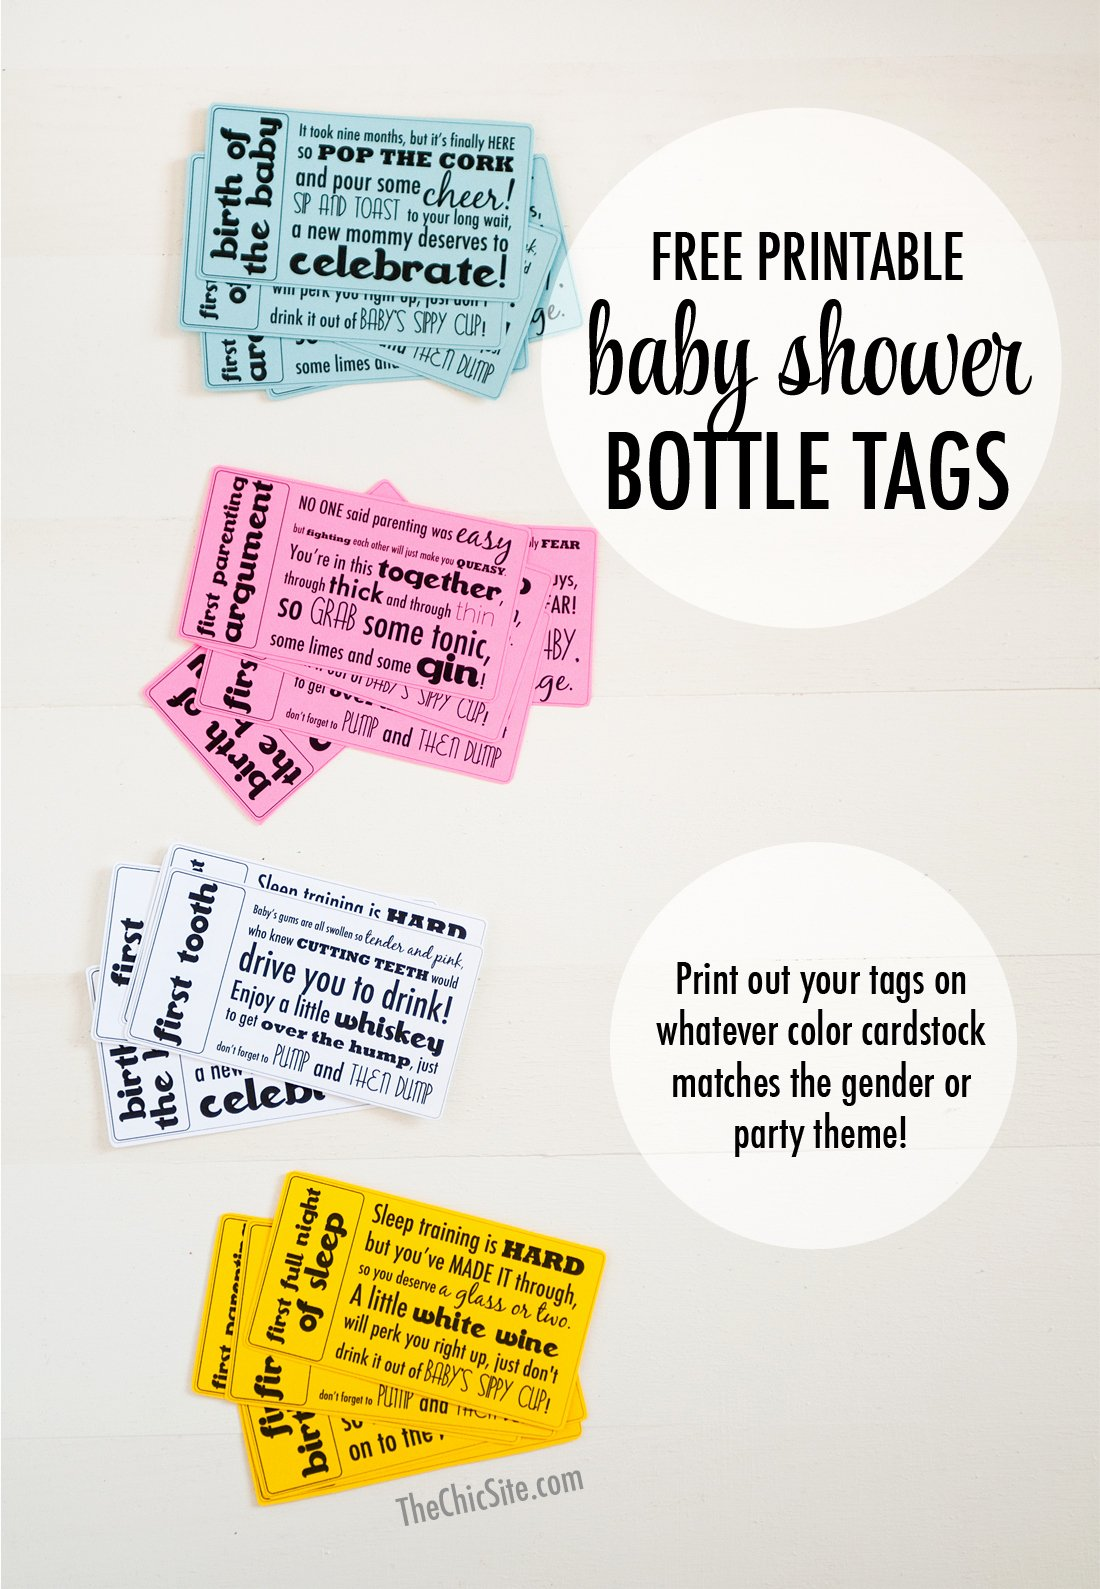 Baby Shower Gift Tag Fresh Baby Shower Gift Tags the Chic Site